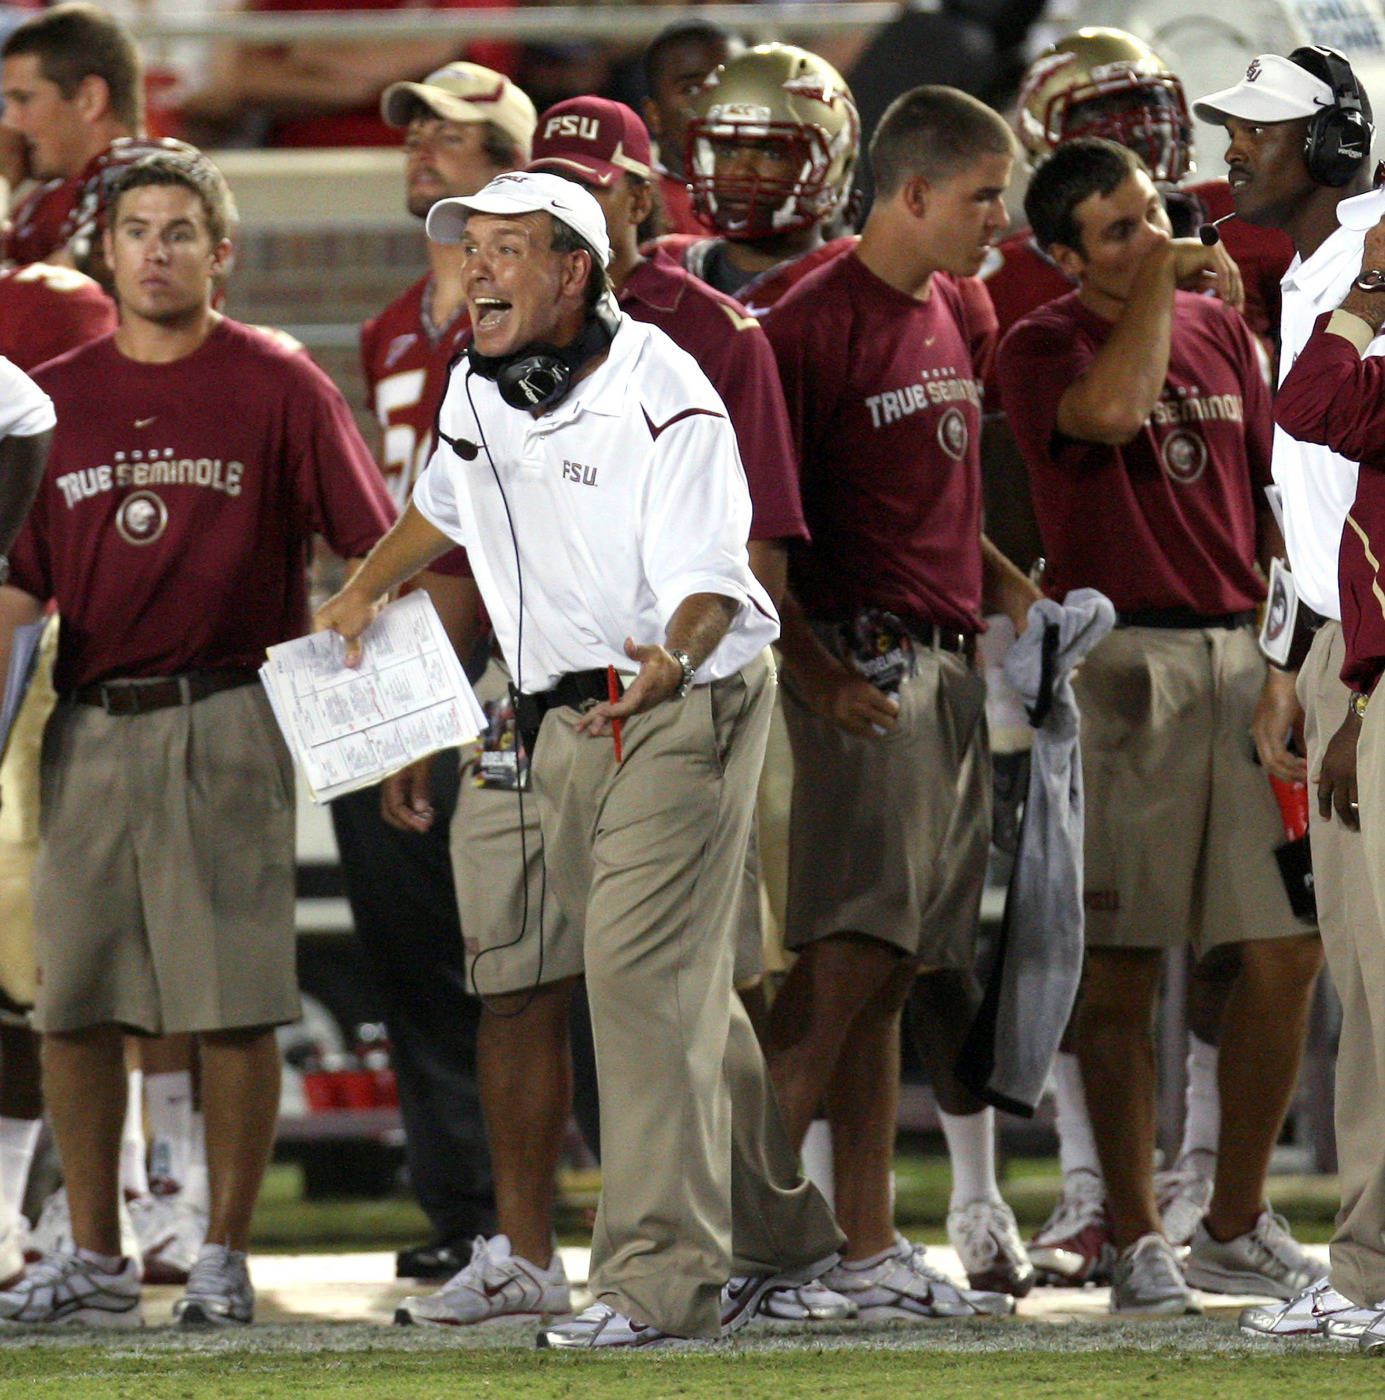 Florida State offensive coordinator Jimbo Fisher, center, yells at his offense during an NCAA college football game against Miami, Monday, Sept. 7, 2009, in Tallahassee, Fla. (AP Photo/Phil Coale)